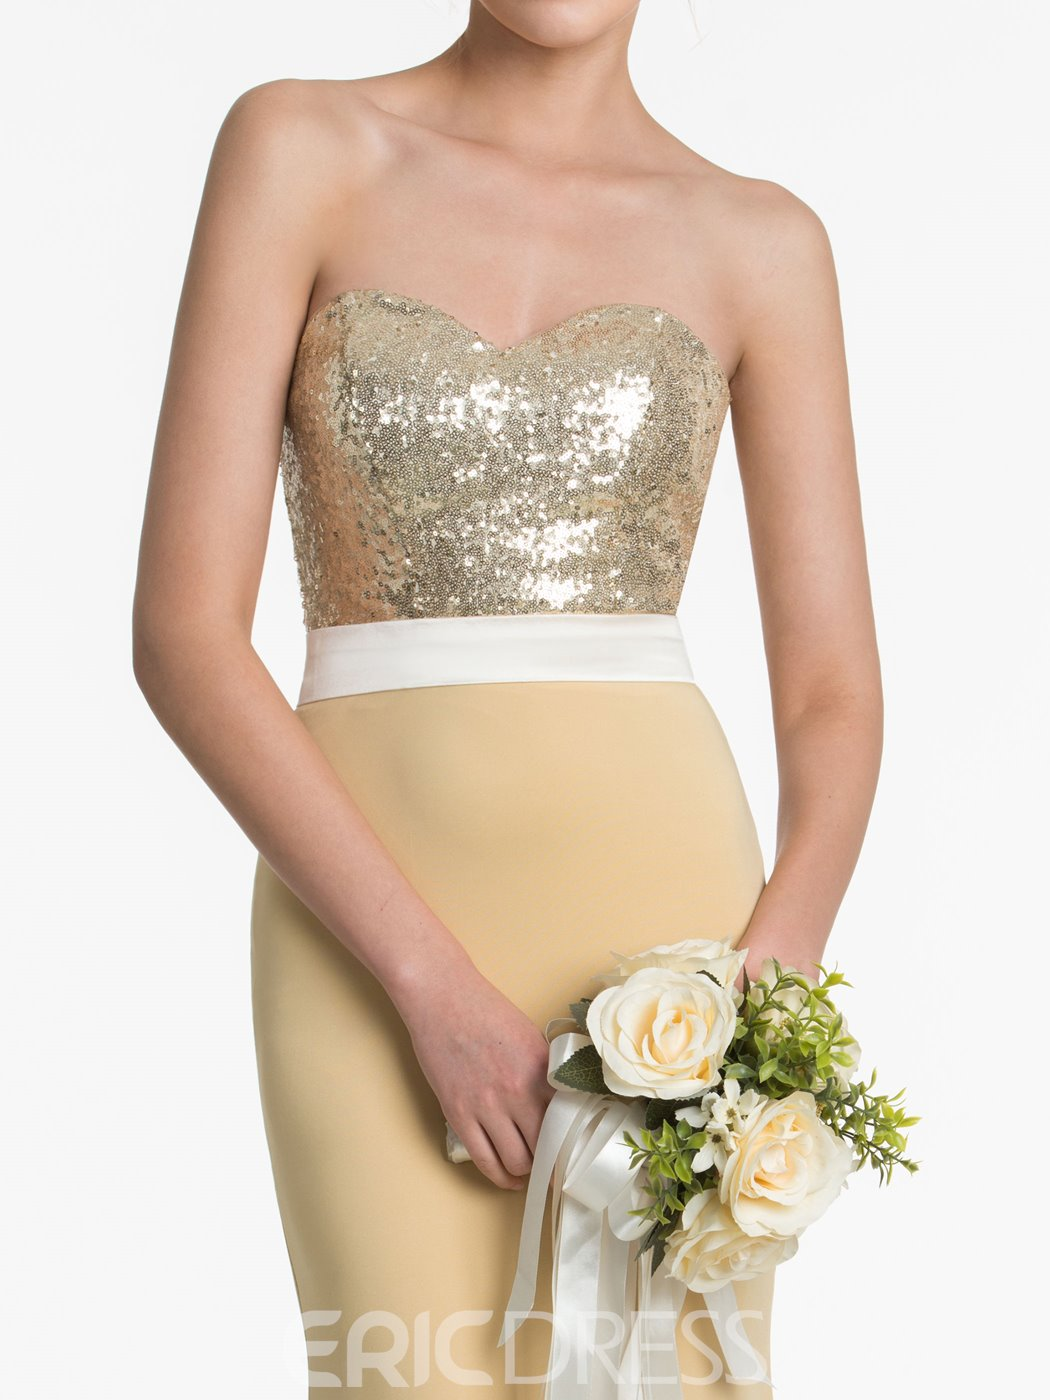 Ericdress High Quality Sweetheart Mermaid Sequins Bridesmaid Dress